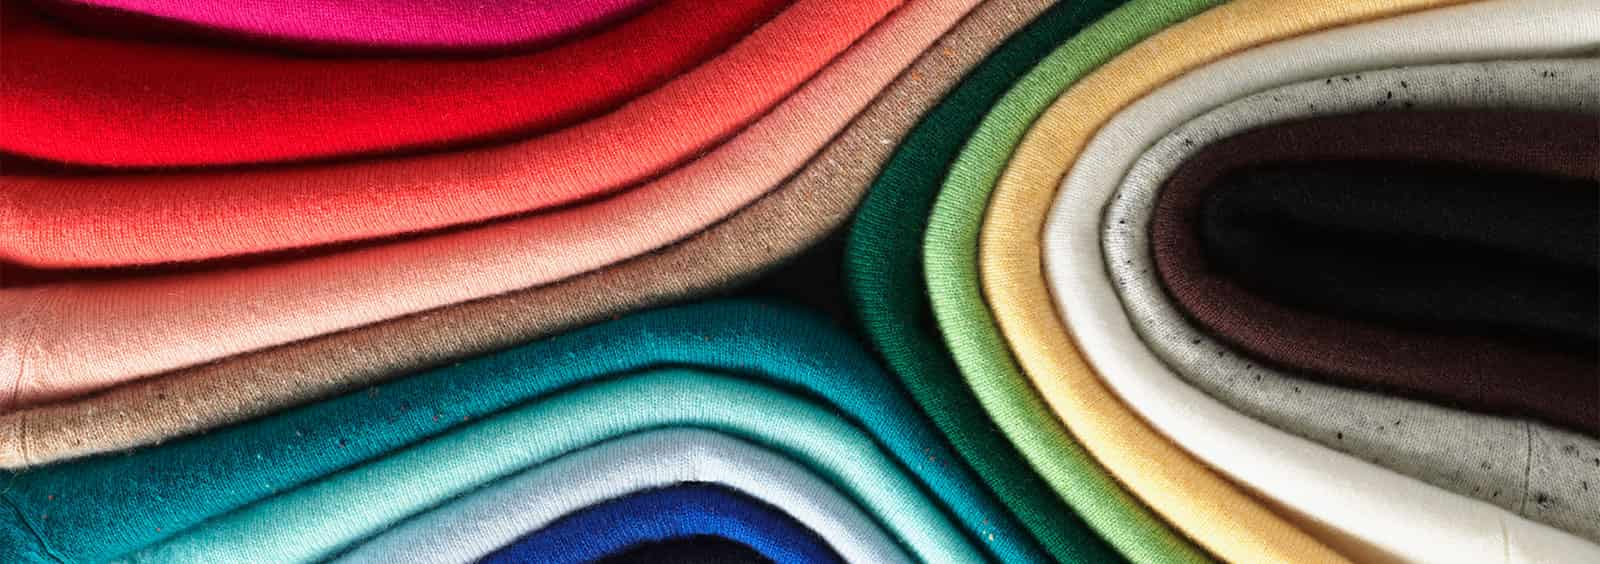 How to Choose a Cashmere Sweater That Your Mom Will Love